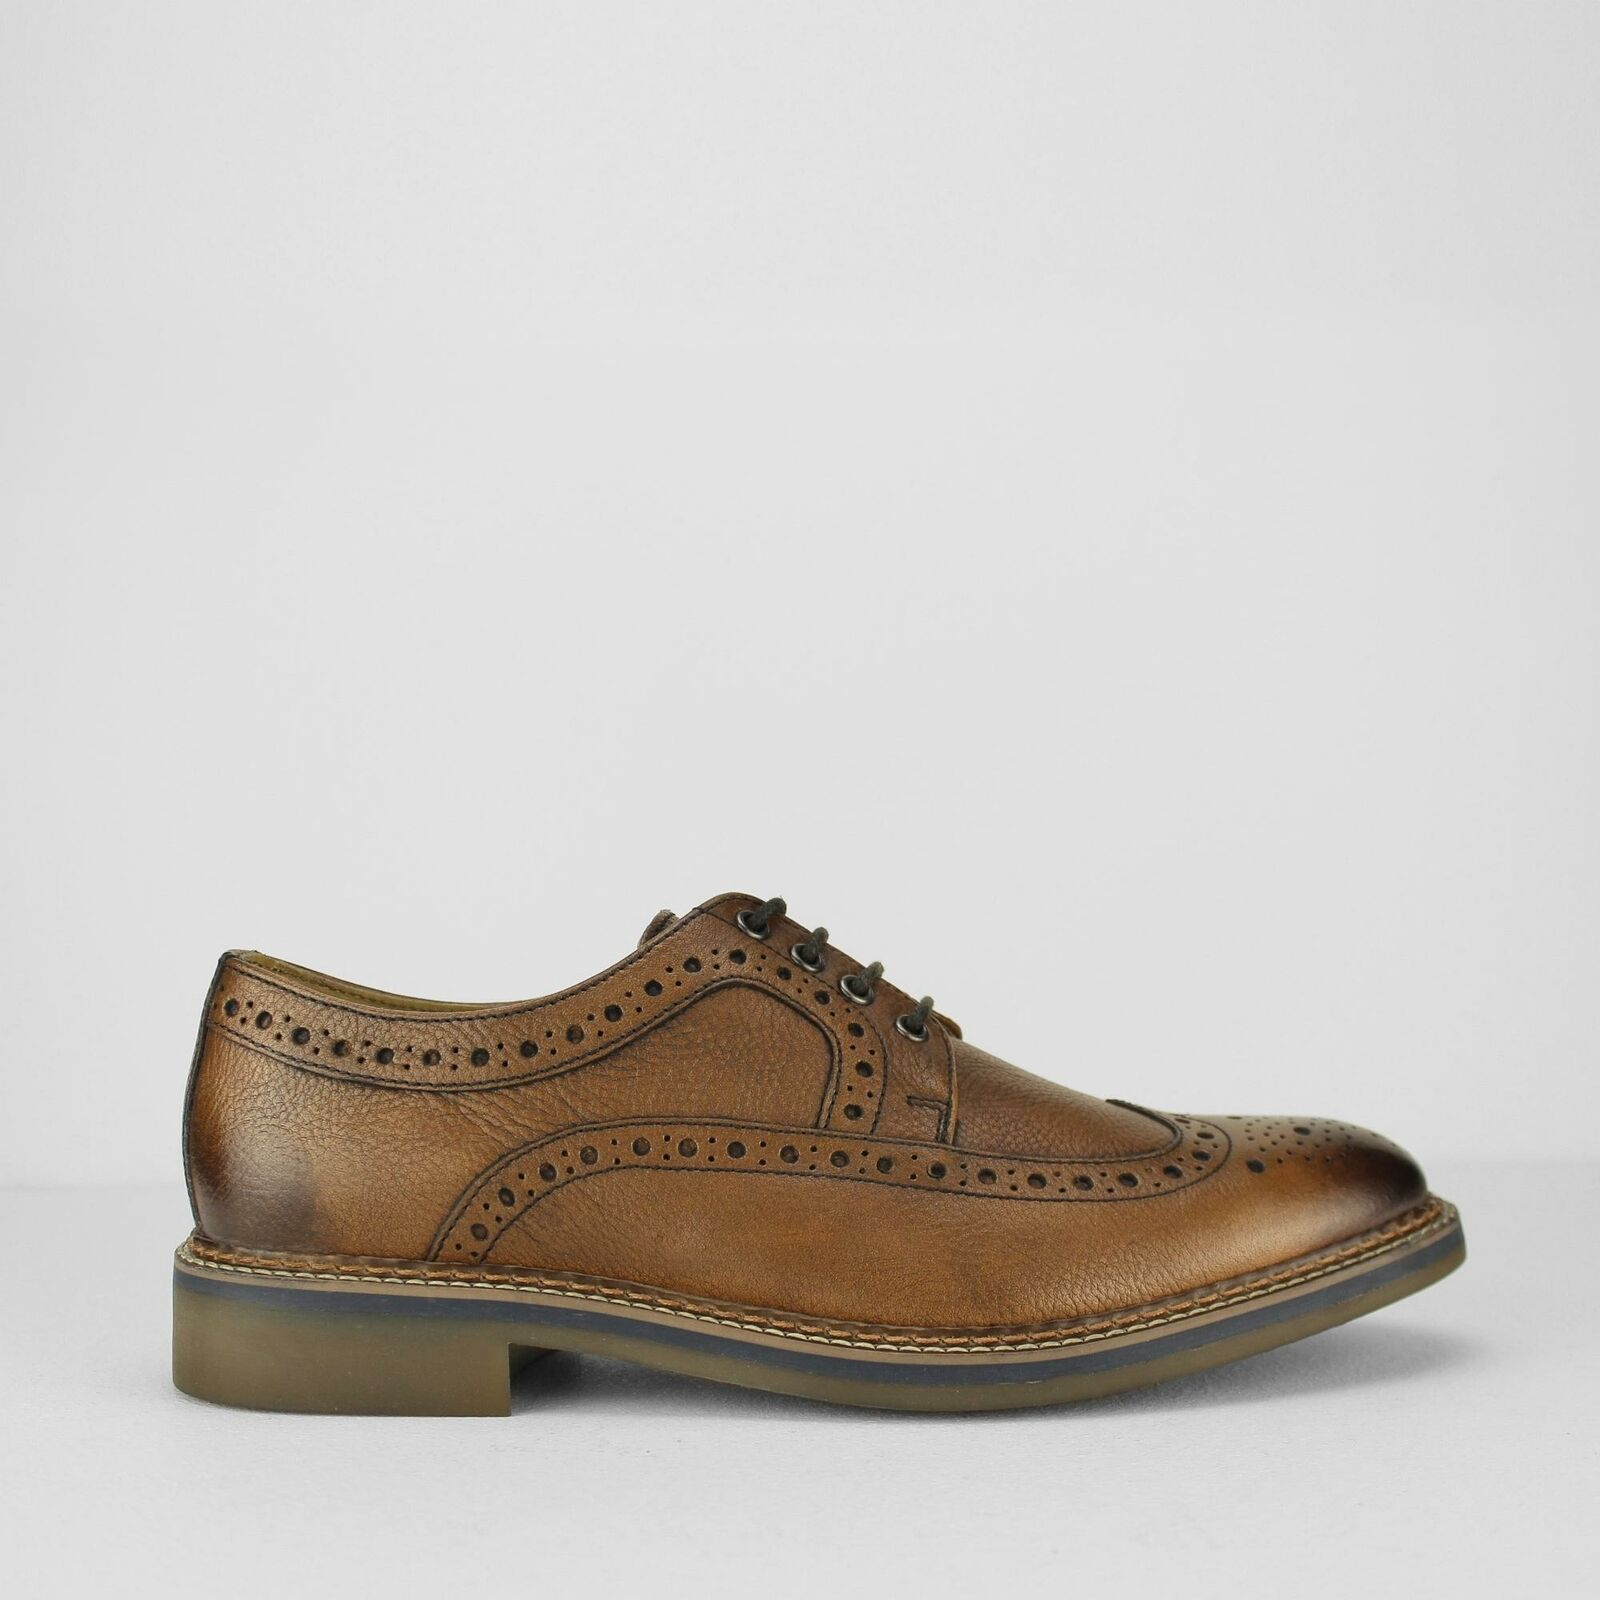 Ikon BARLEY Mens Scotch-grain Leather Stylish Lace-Up Wingtip Brogue schuhe Tan